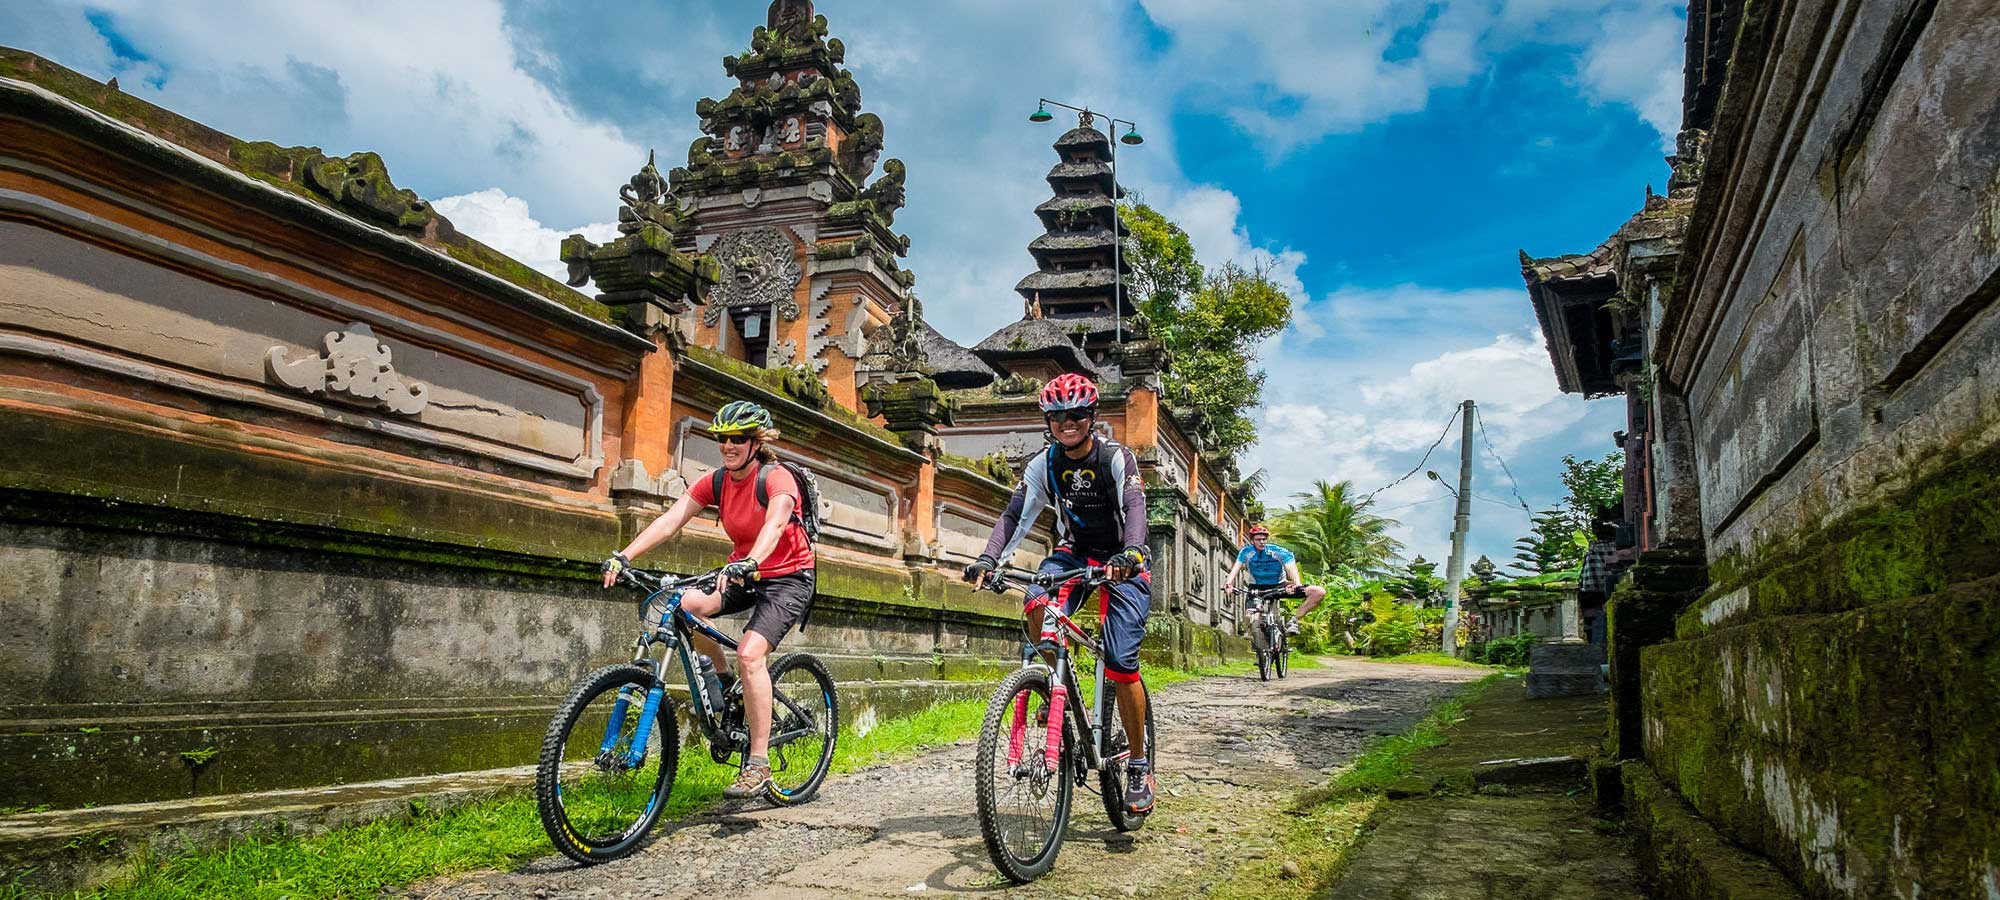 Cycling Tours - Bali Tourist Attraction and Activities